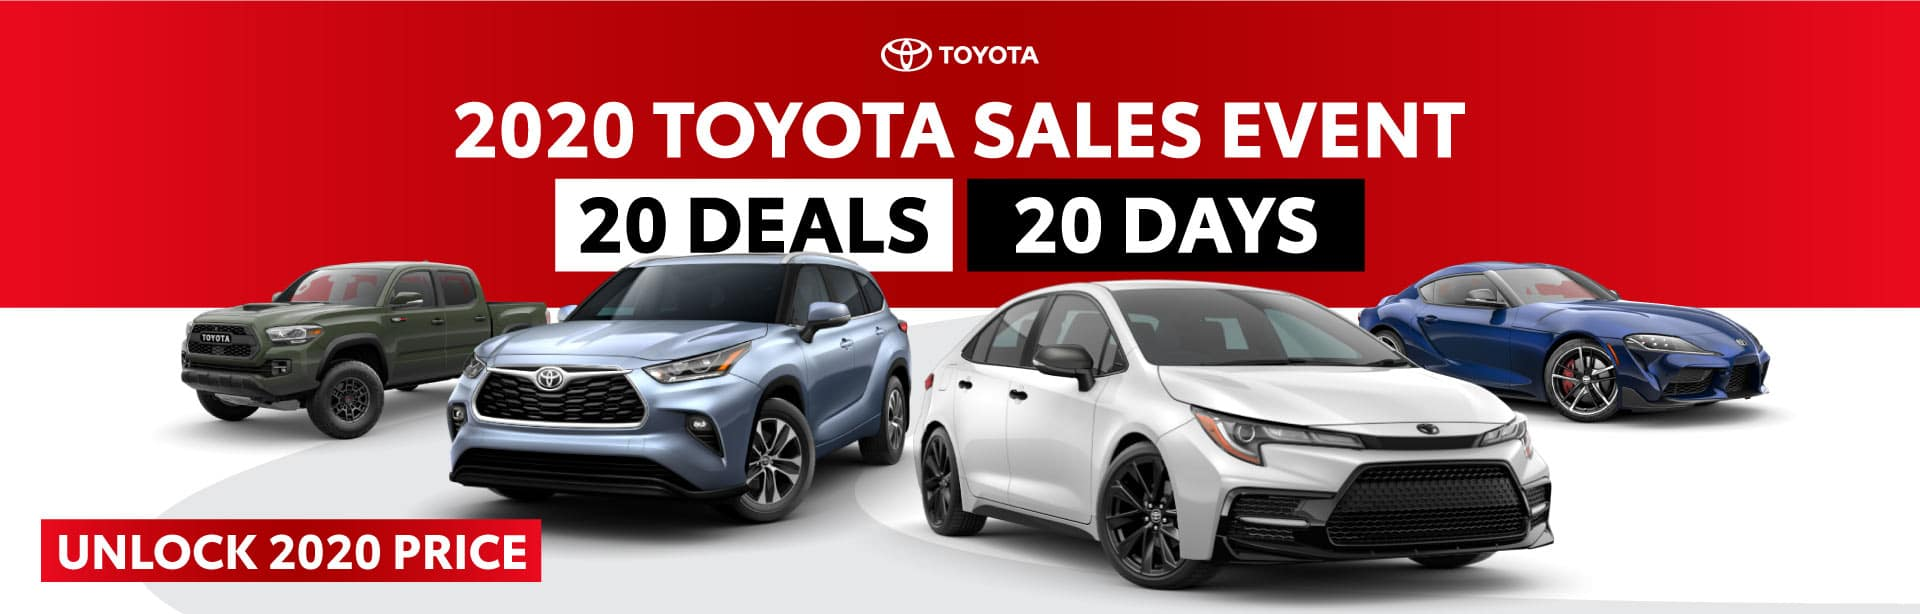 Toyota Financing Deals >> West Kendall Toyota In Miami New Cars Used Cars Toyota